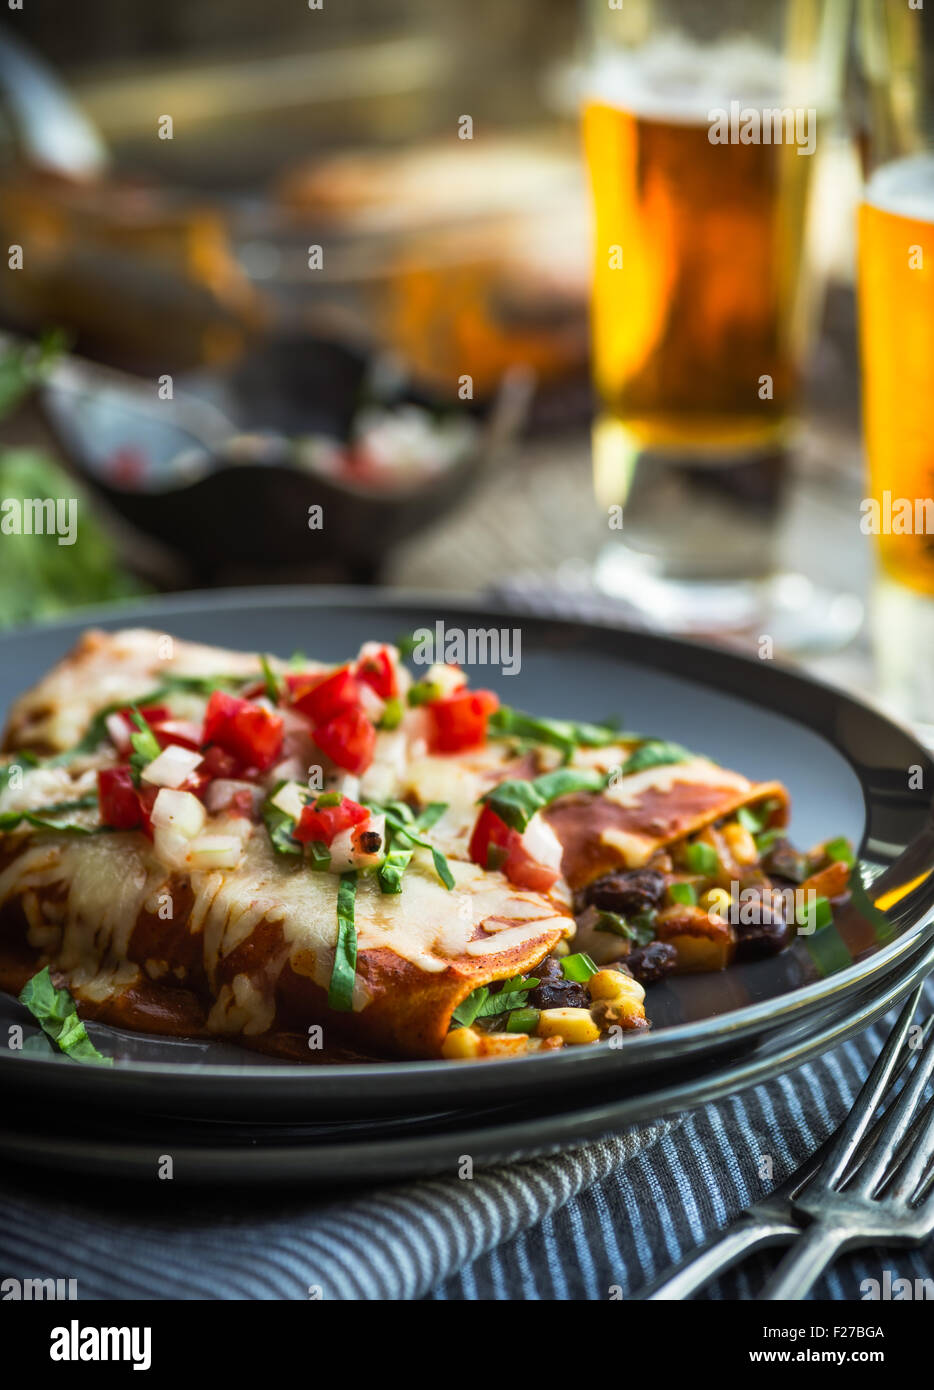 Spicy black bean and corn enchiladas with sauce and cheese Stock Photo